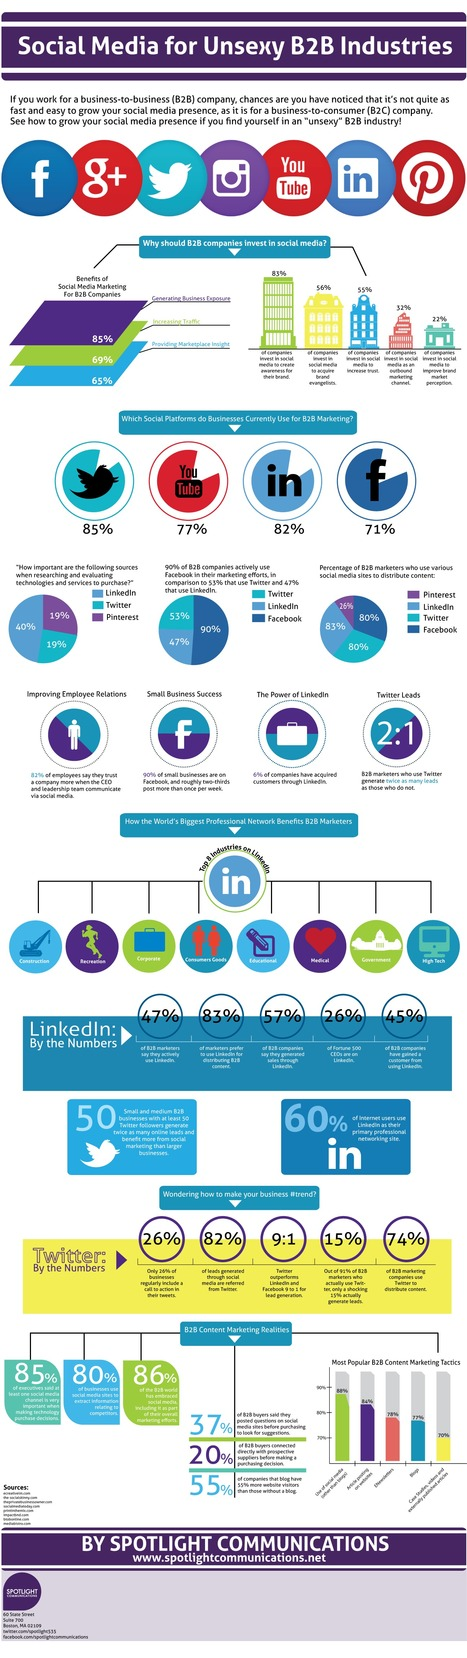 The Best Social Networks for B2B Companies [INFOGRAPHIC] | Social Media Useful Info | Scoop.it